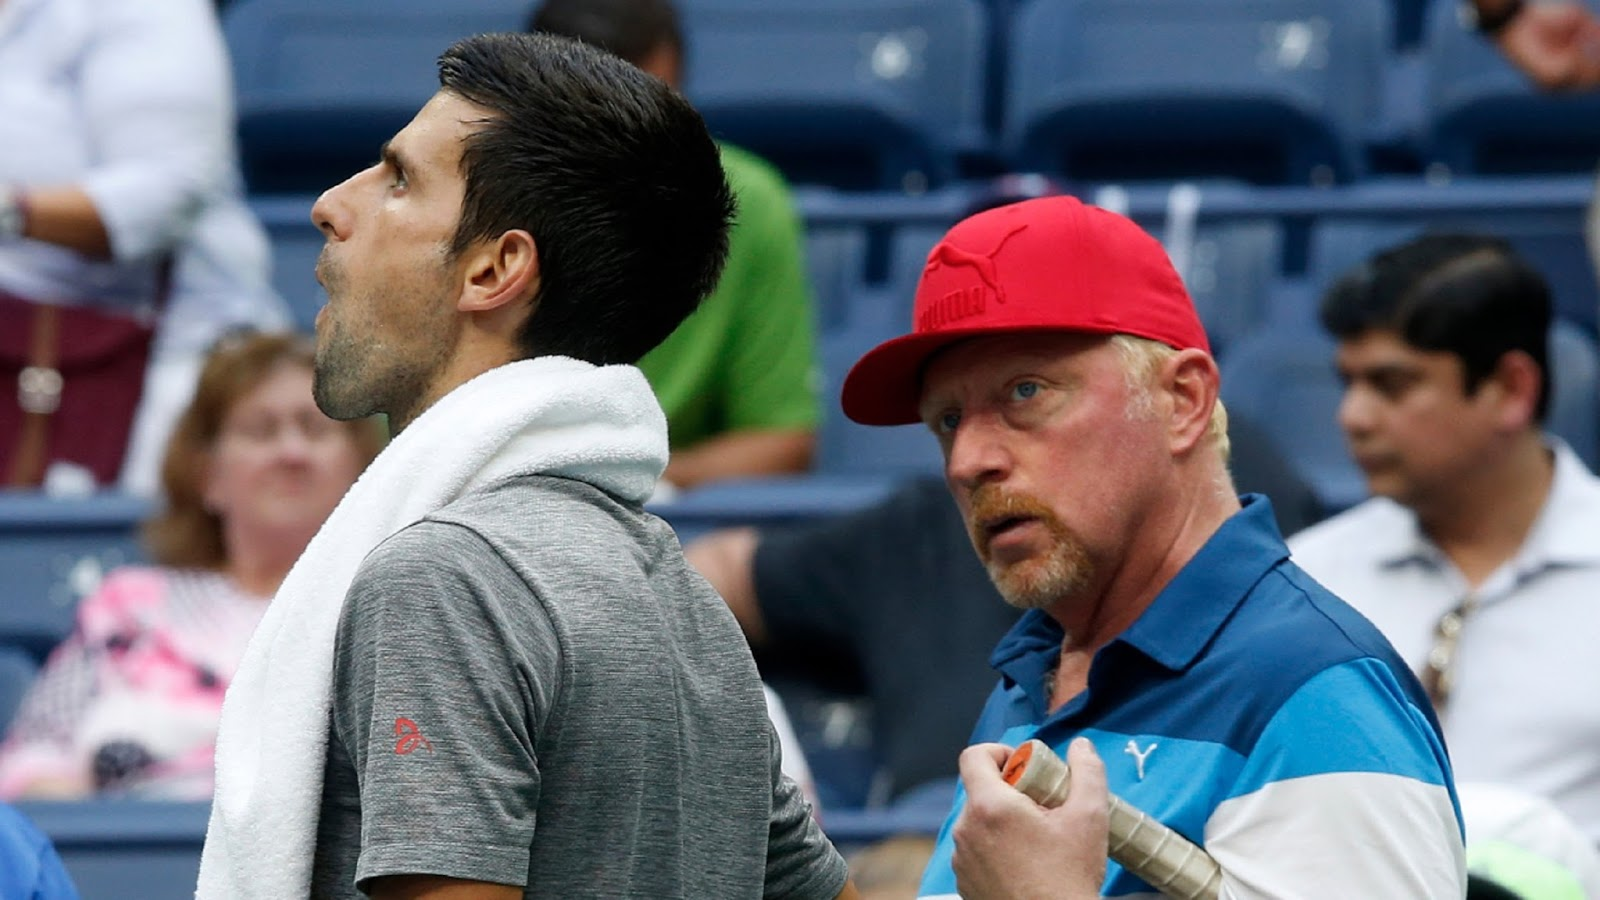 NOVAK DJOKOVIC, BORIS BECKER 2